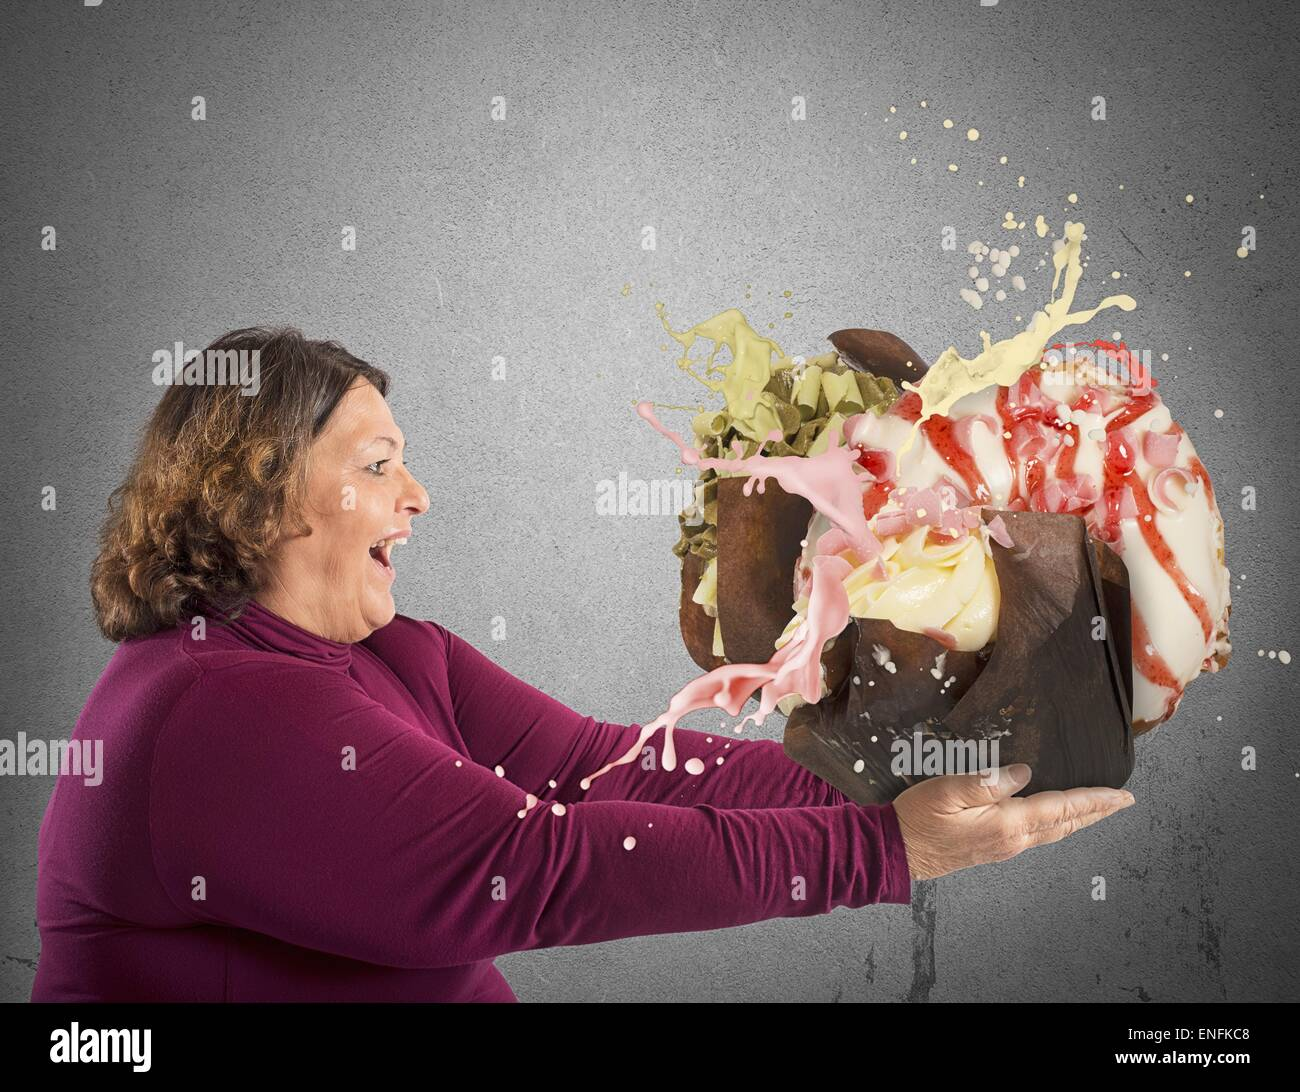 Woman entranced by sweet - Stock Image